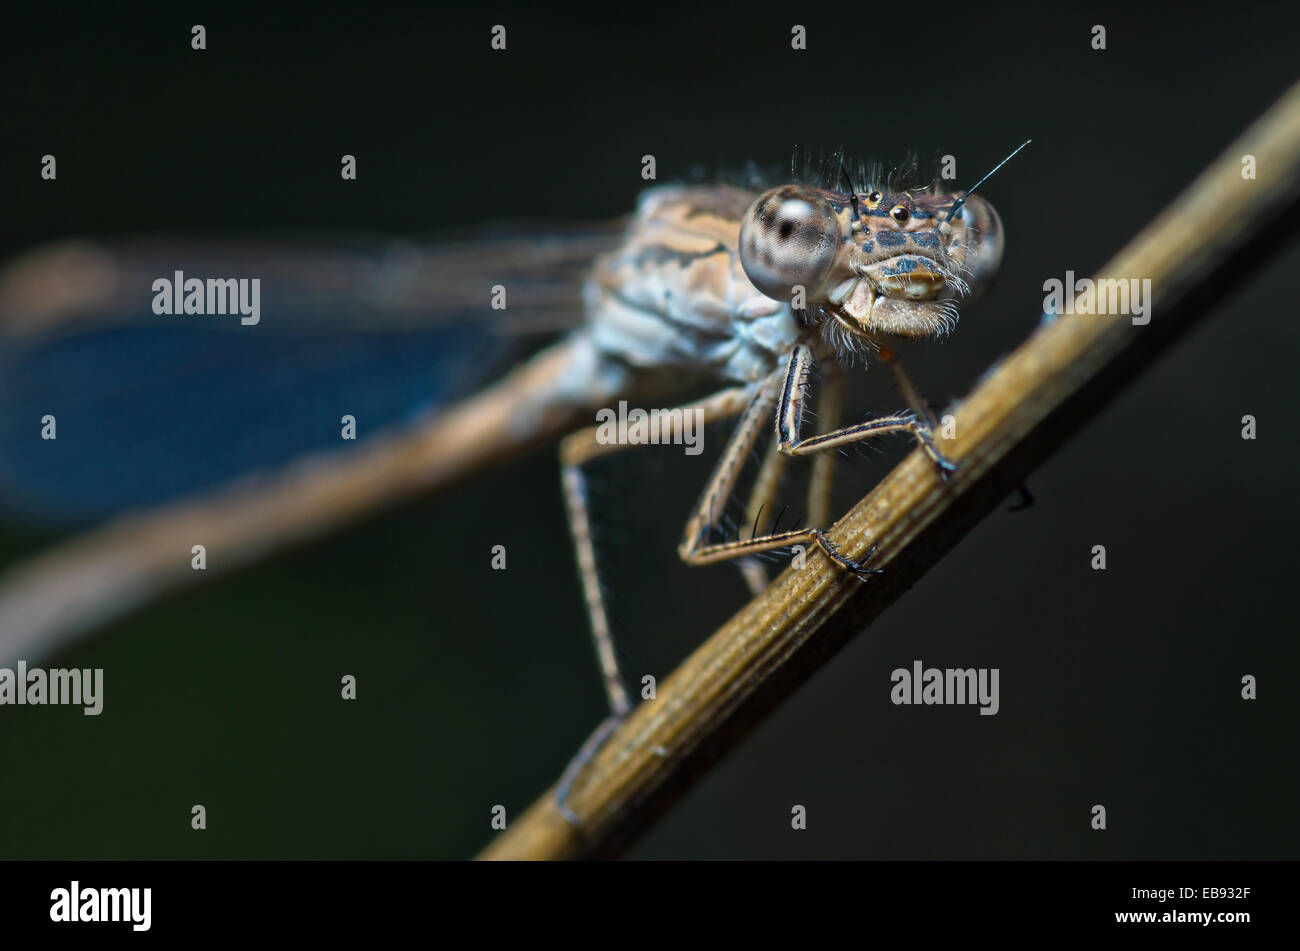 Cyan dragonfly on dark background - Stock Image